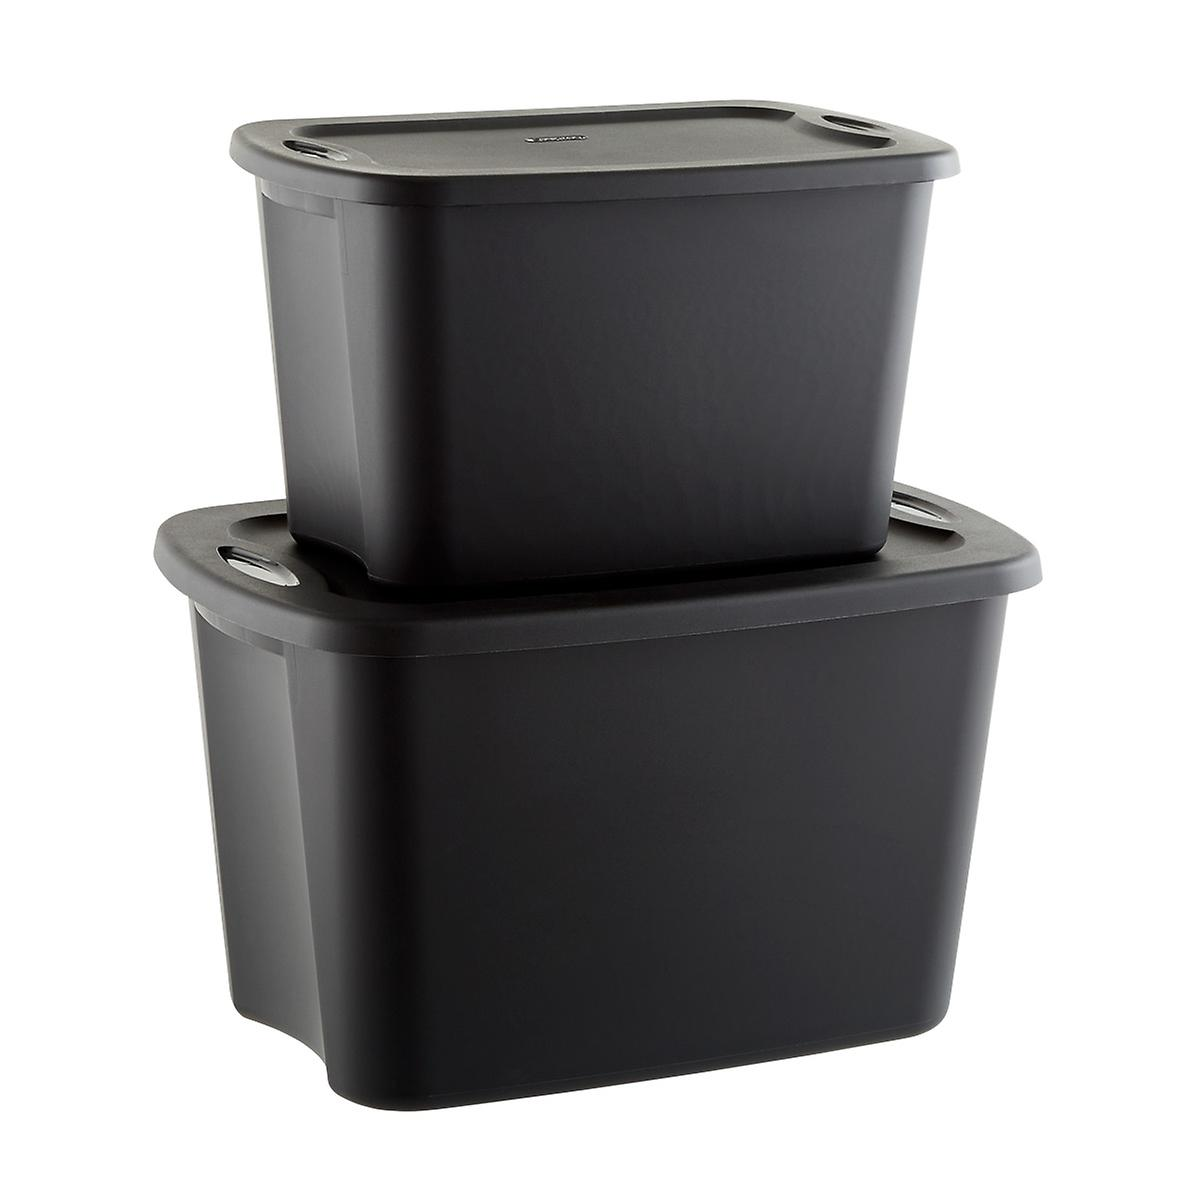 Cases of Sterilite Black Tote Boxes